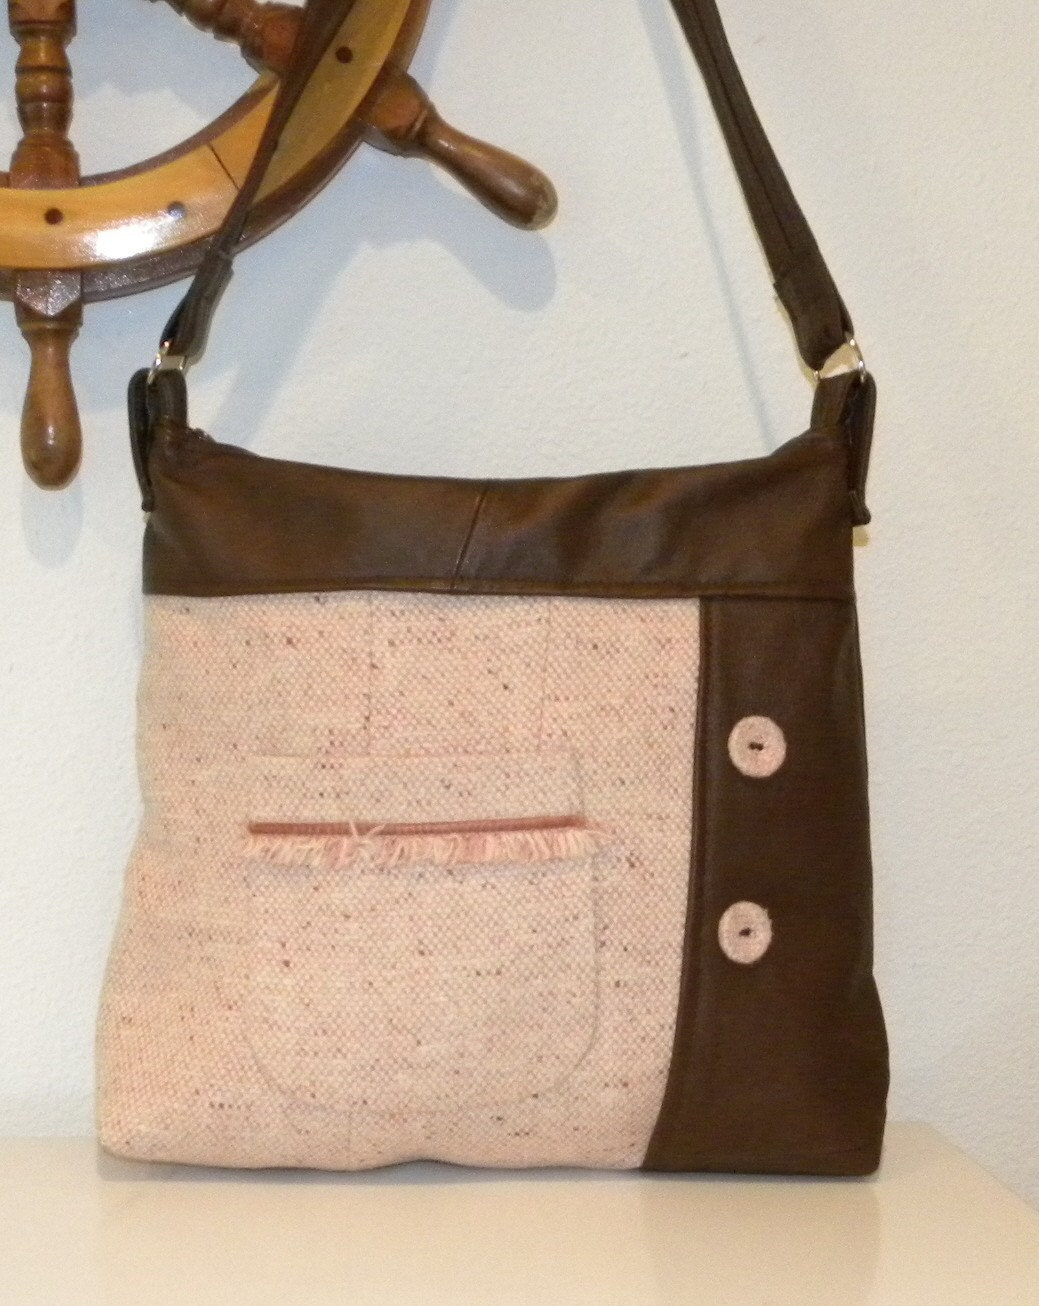 Handmade from a Reddish Brown Leather jacket and a Salmon Pink Tweed Jacket - Handbag - hobo bag - Tote Bag - Purse